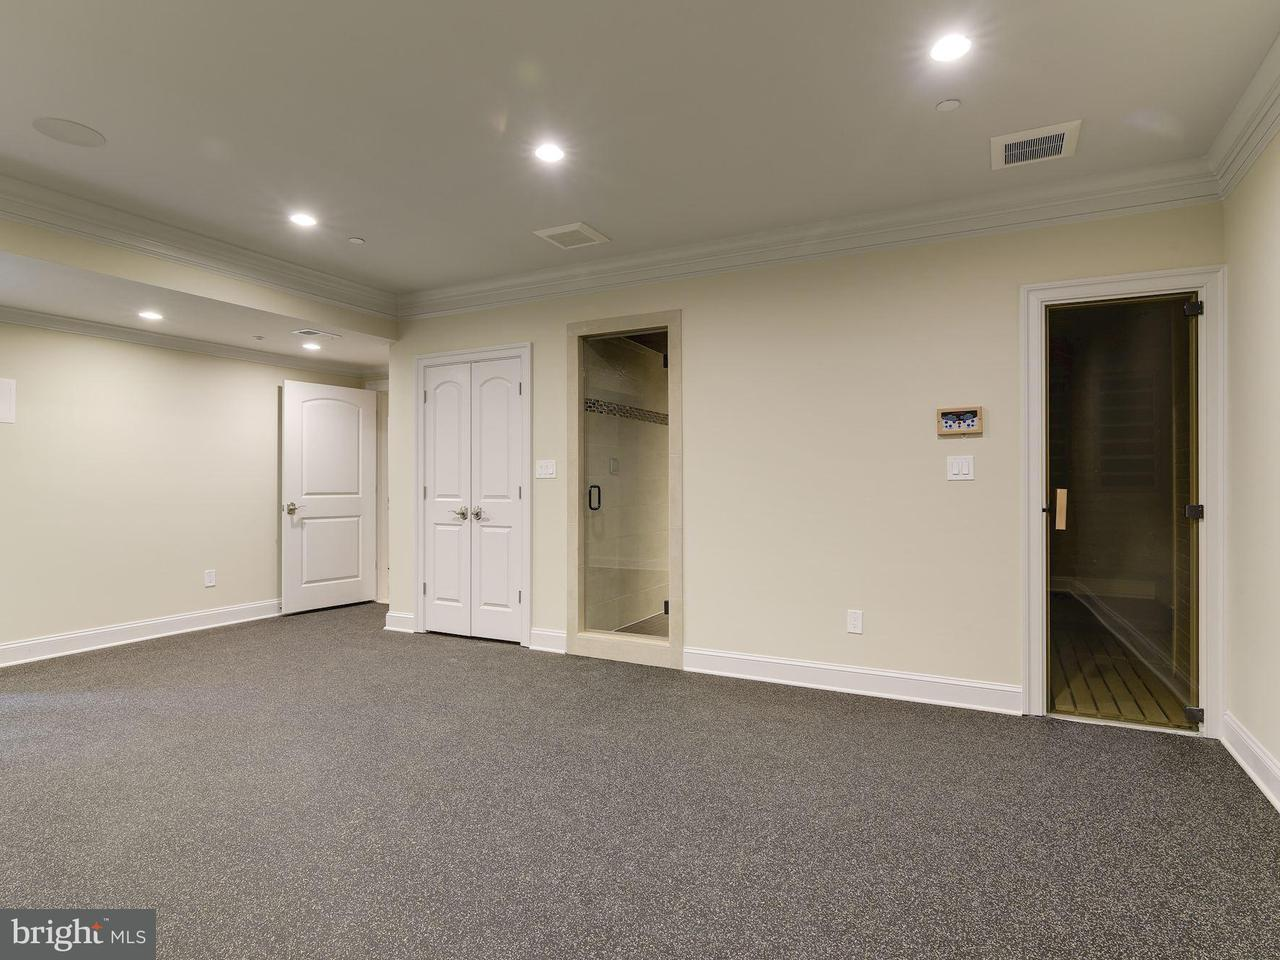 Additional photo for property listing at 11637 Vixens Path 11637 Vixens Path Ellicott City, Maryland 21042 United States